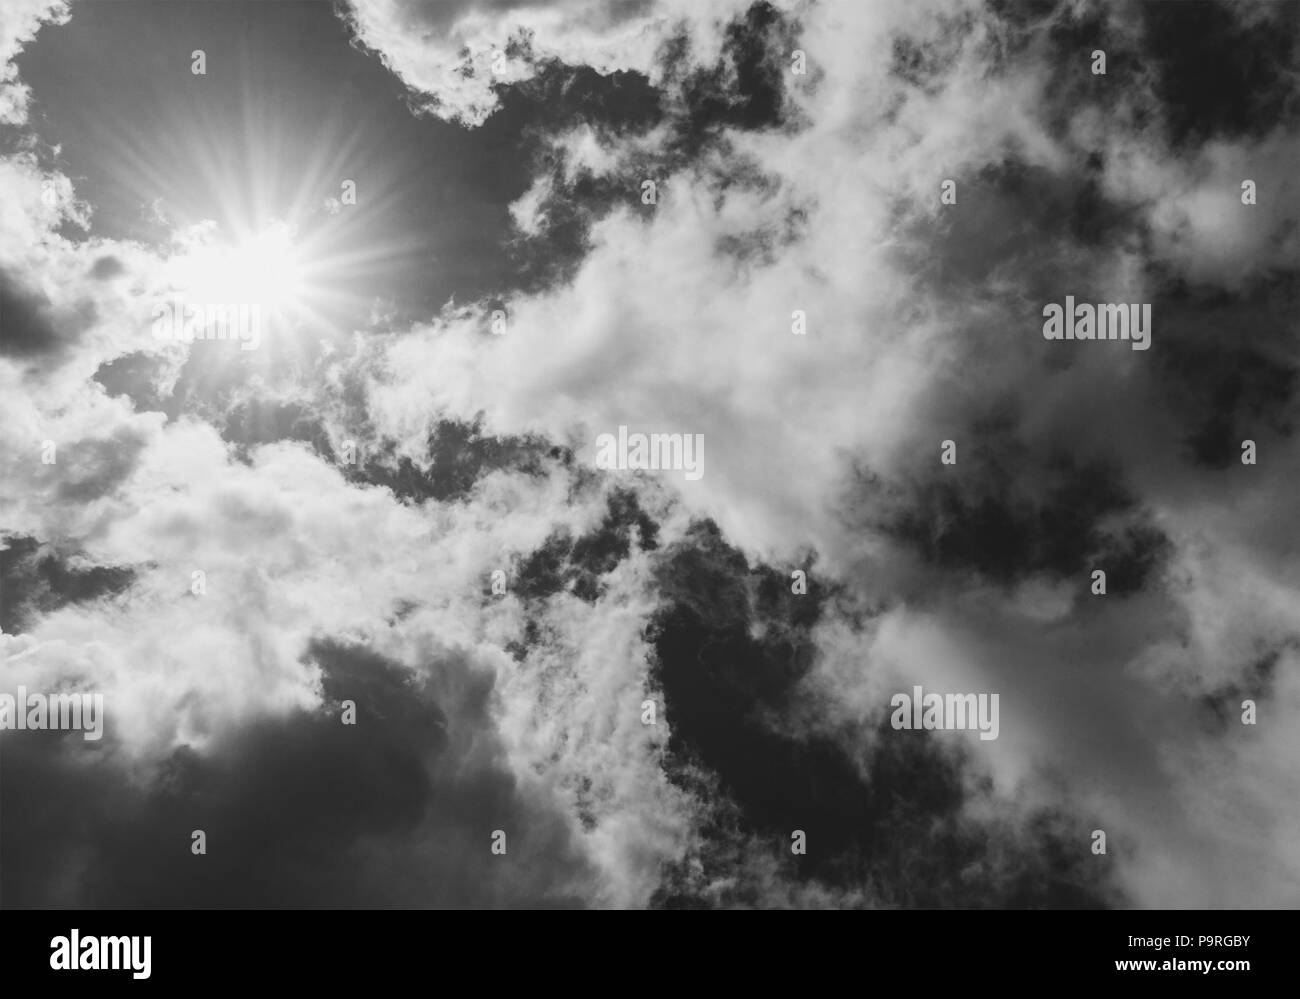 bright sun is closed by clouds, black and white photo - Stock Image